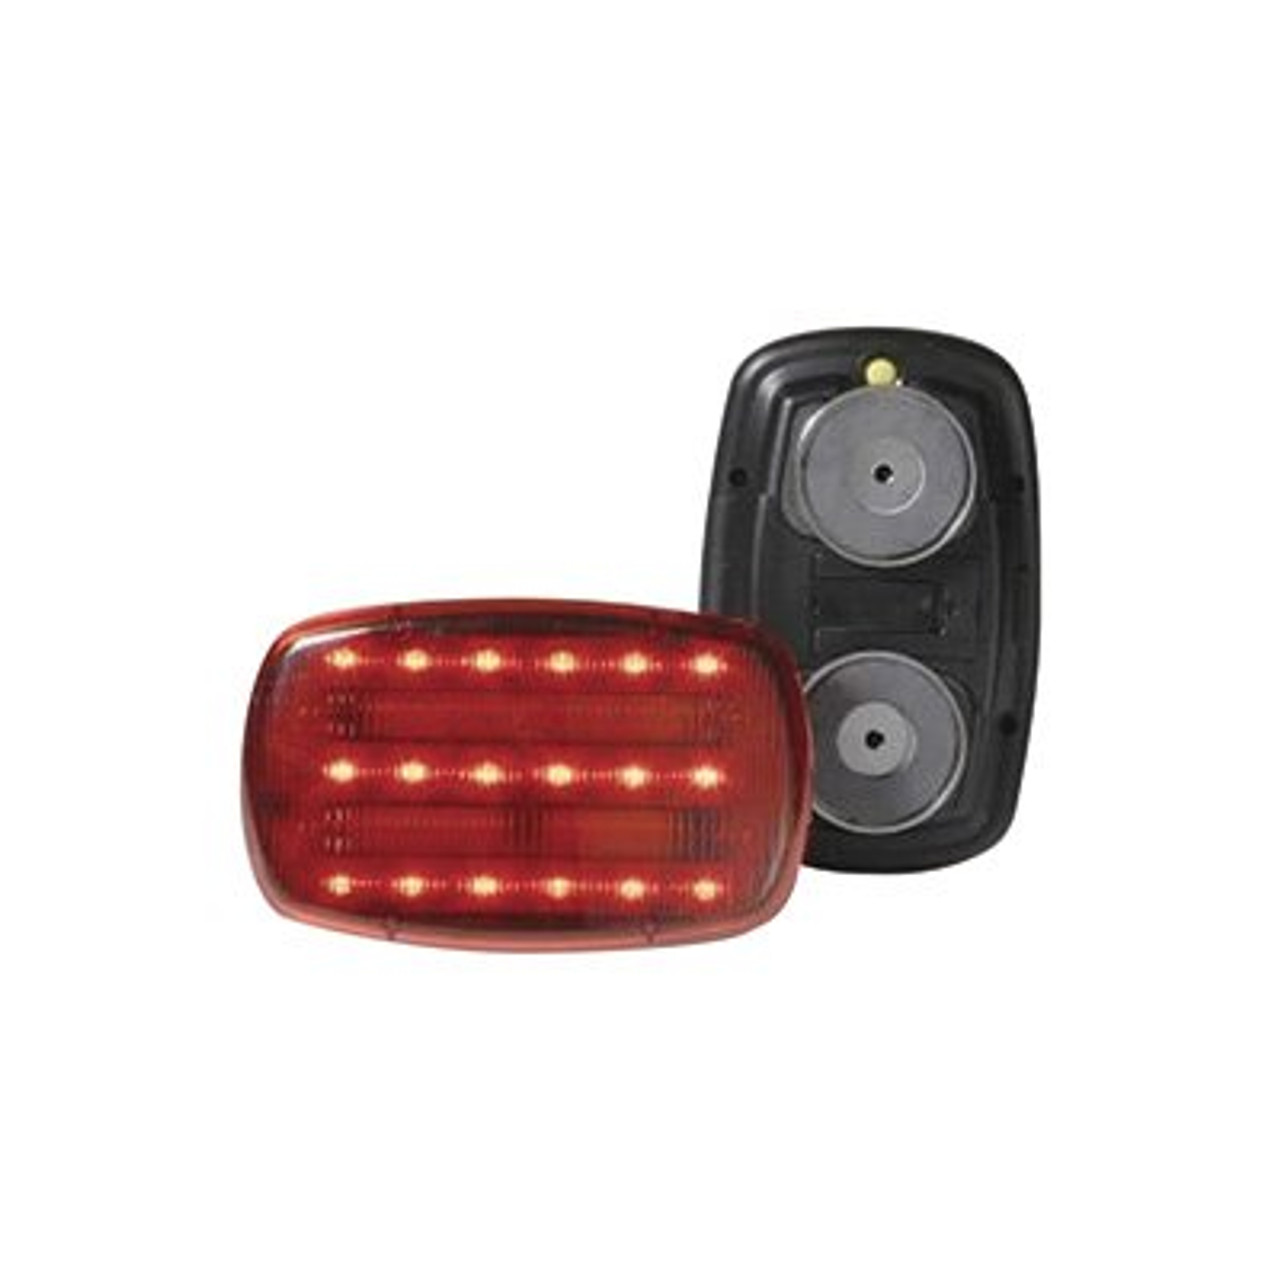 Magnetic Safety Flasher Lamp- Red- Battery Operated